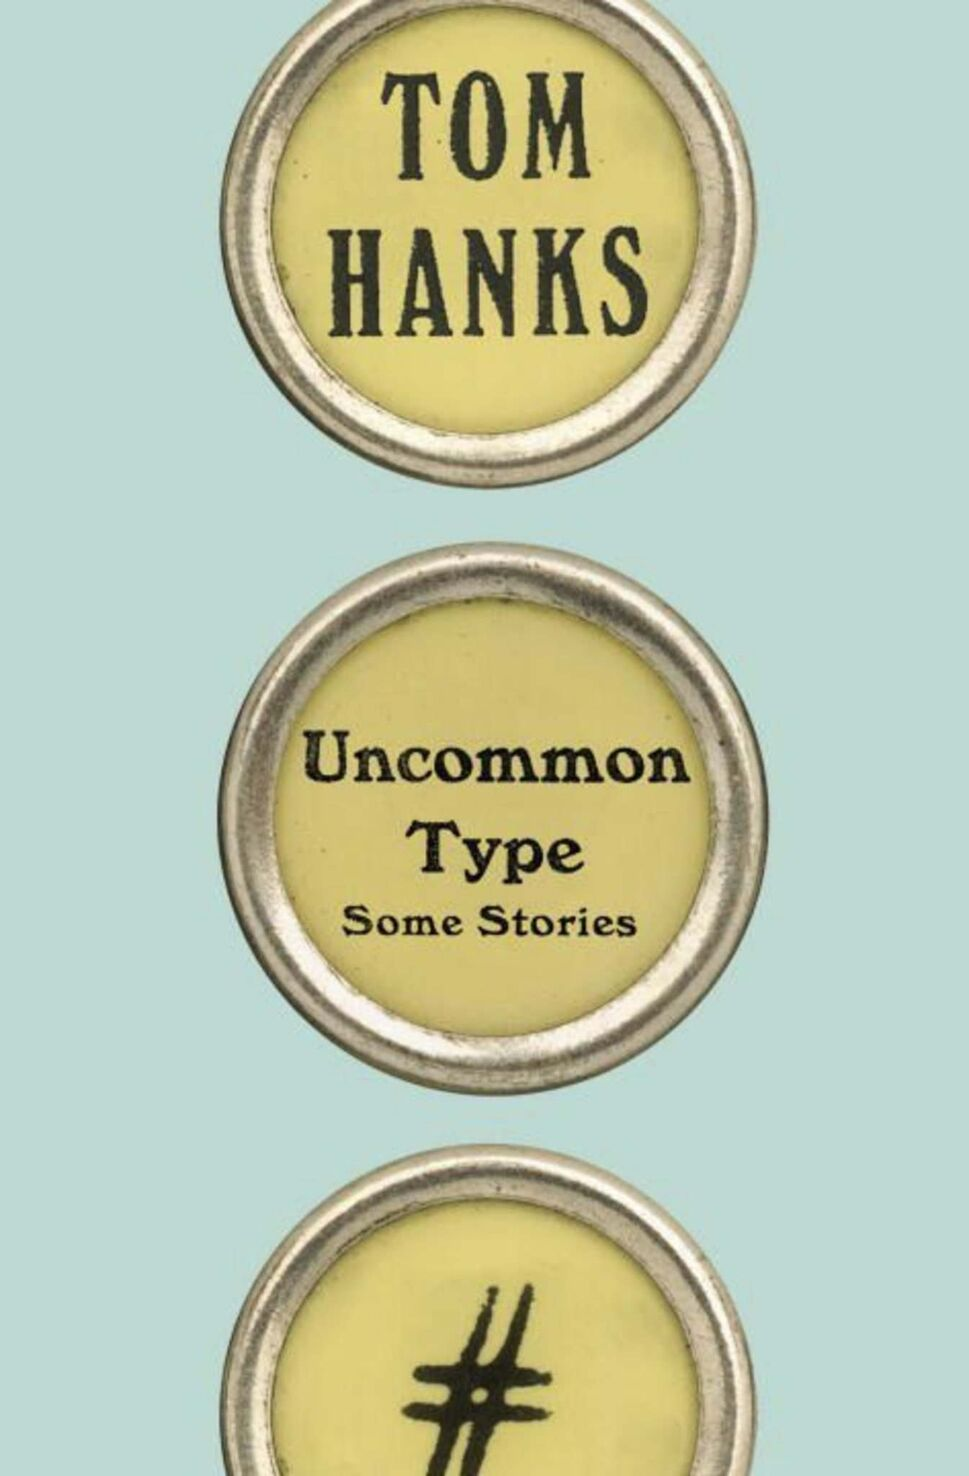 Uncommon Type: Some Stories</p><p>By Tom Hanks</p><p>Alfred A. Knopf, Oct. 20</p><p>The Oscar-winning actor takes his first big step into the literary world with a highly anticipated collection of 17 short stories that span topics such as civil wars, bowling, complicated office romance and more.</p>